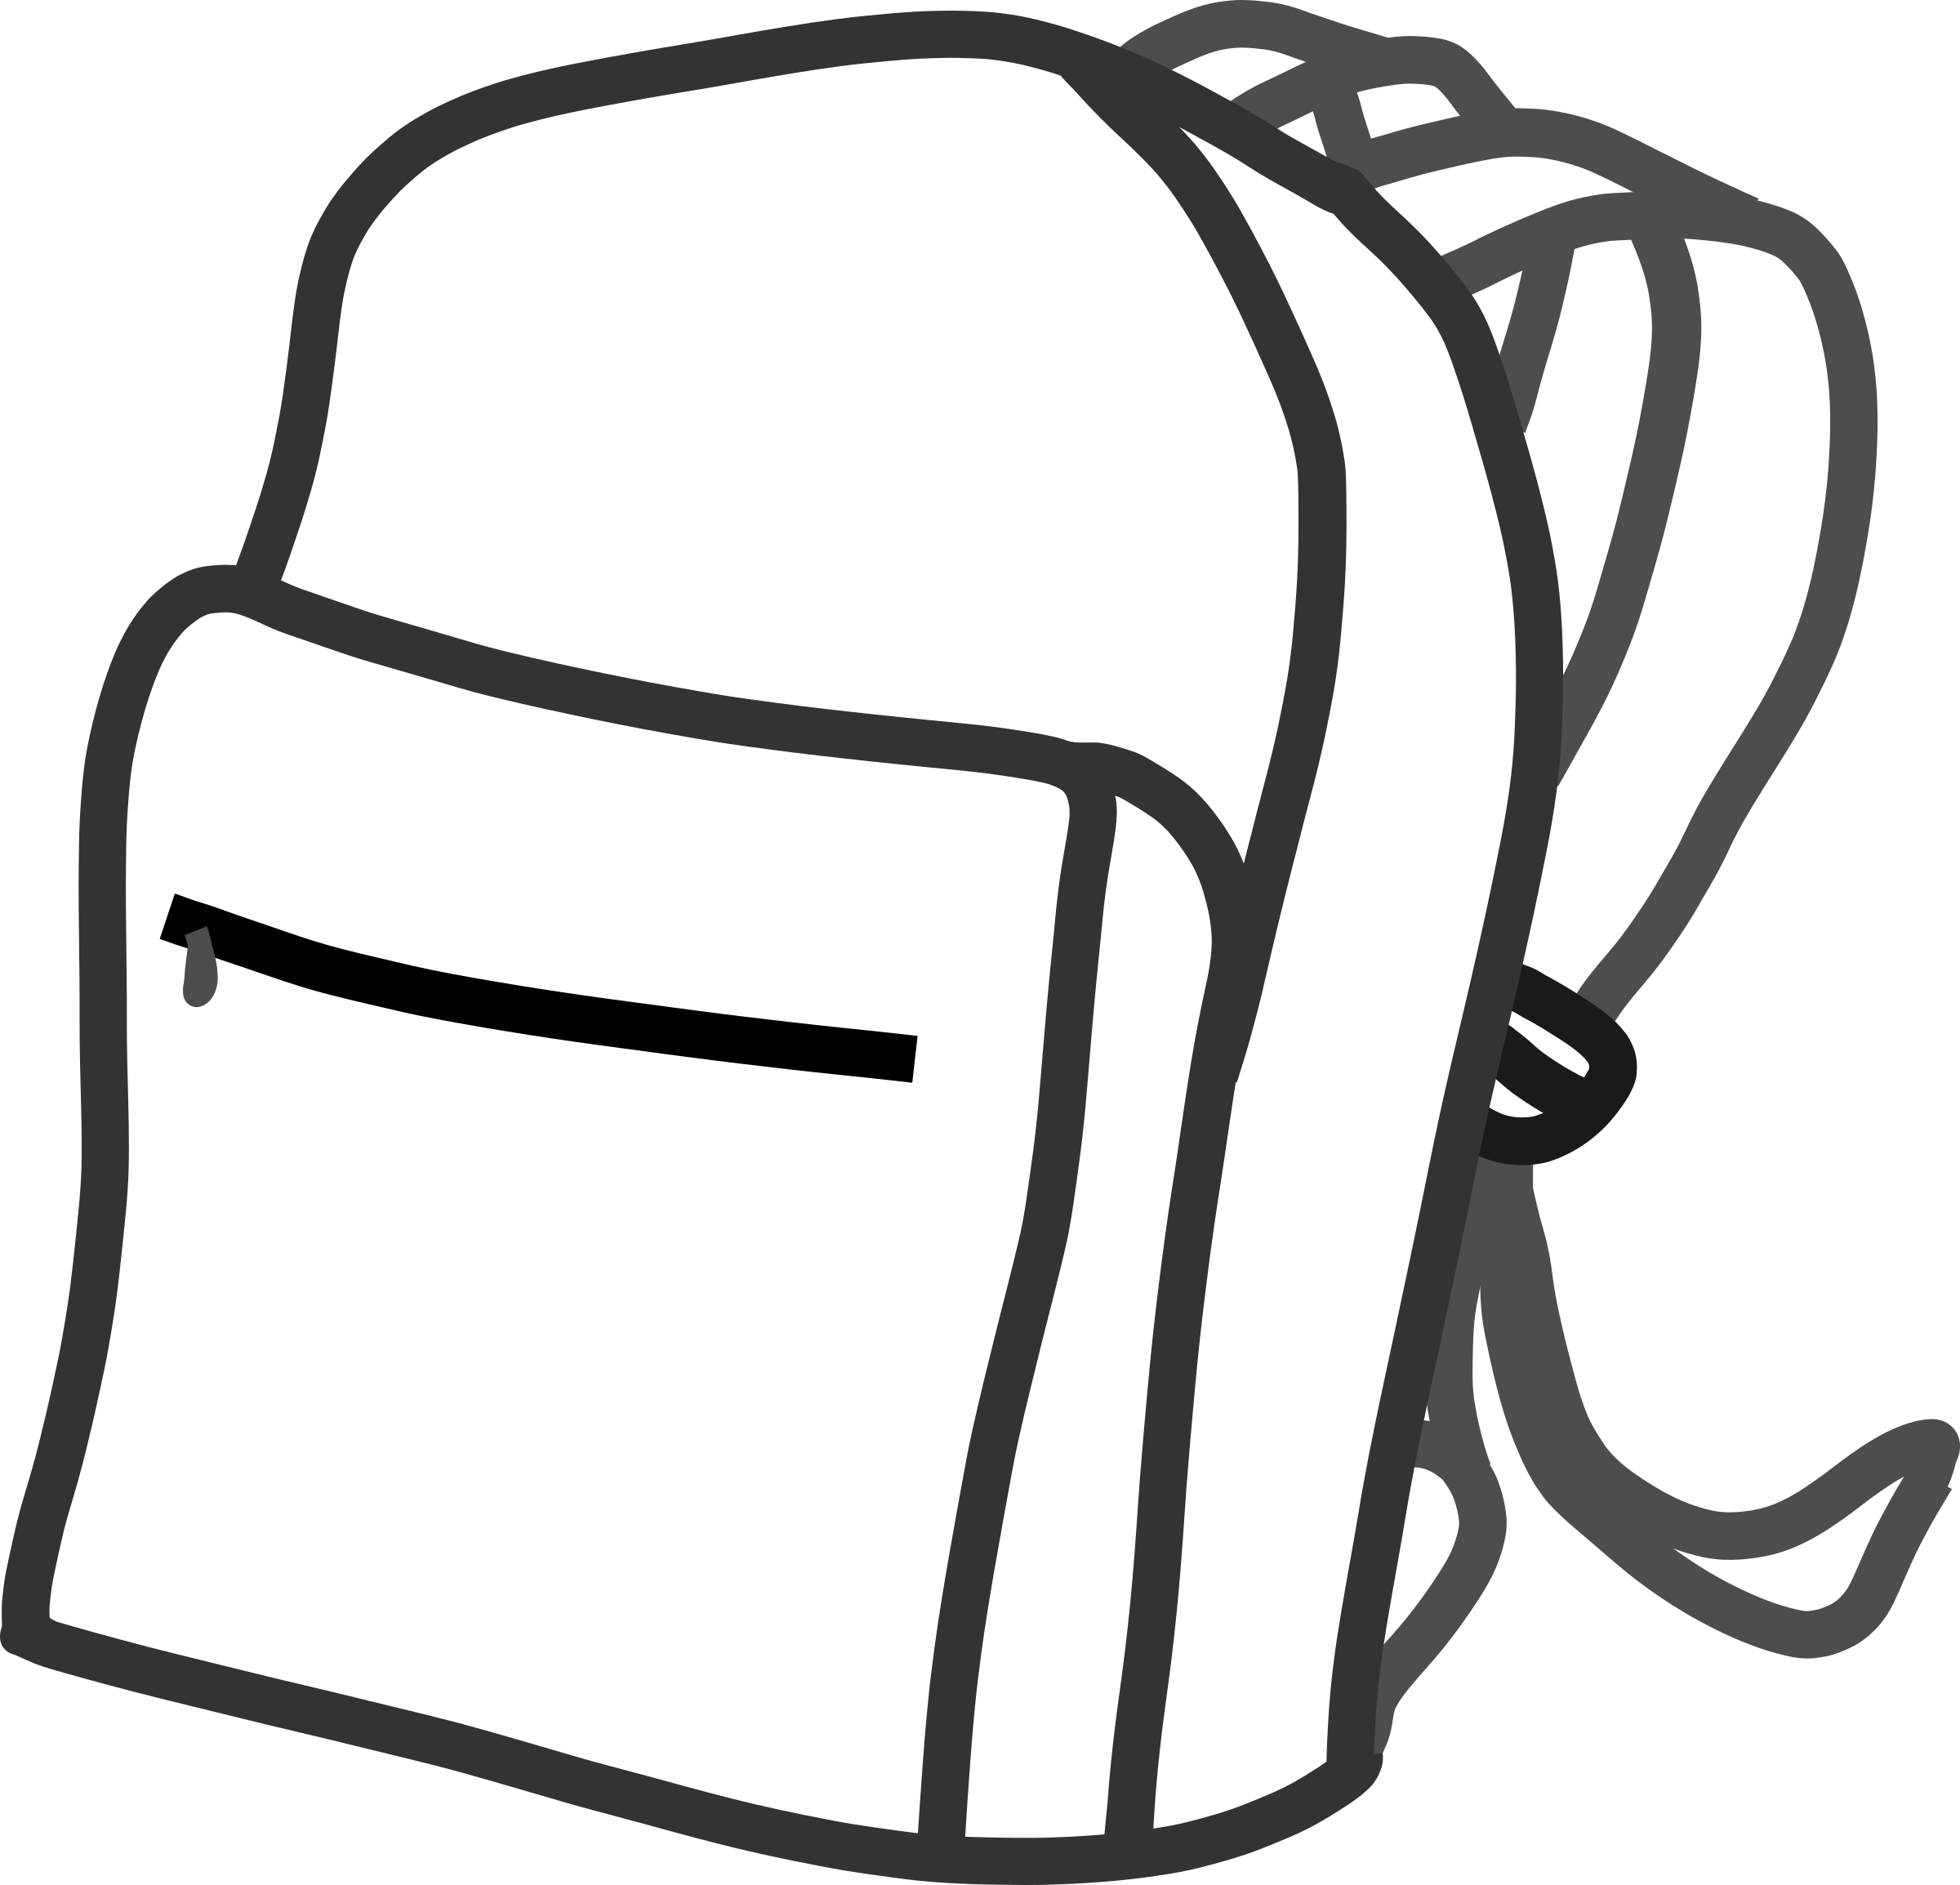 School bag by Kib